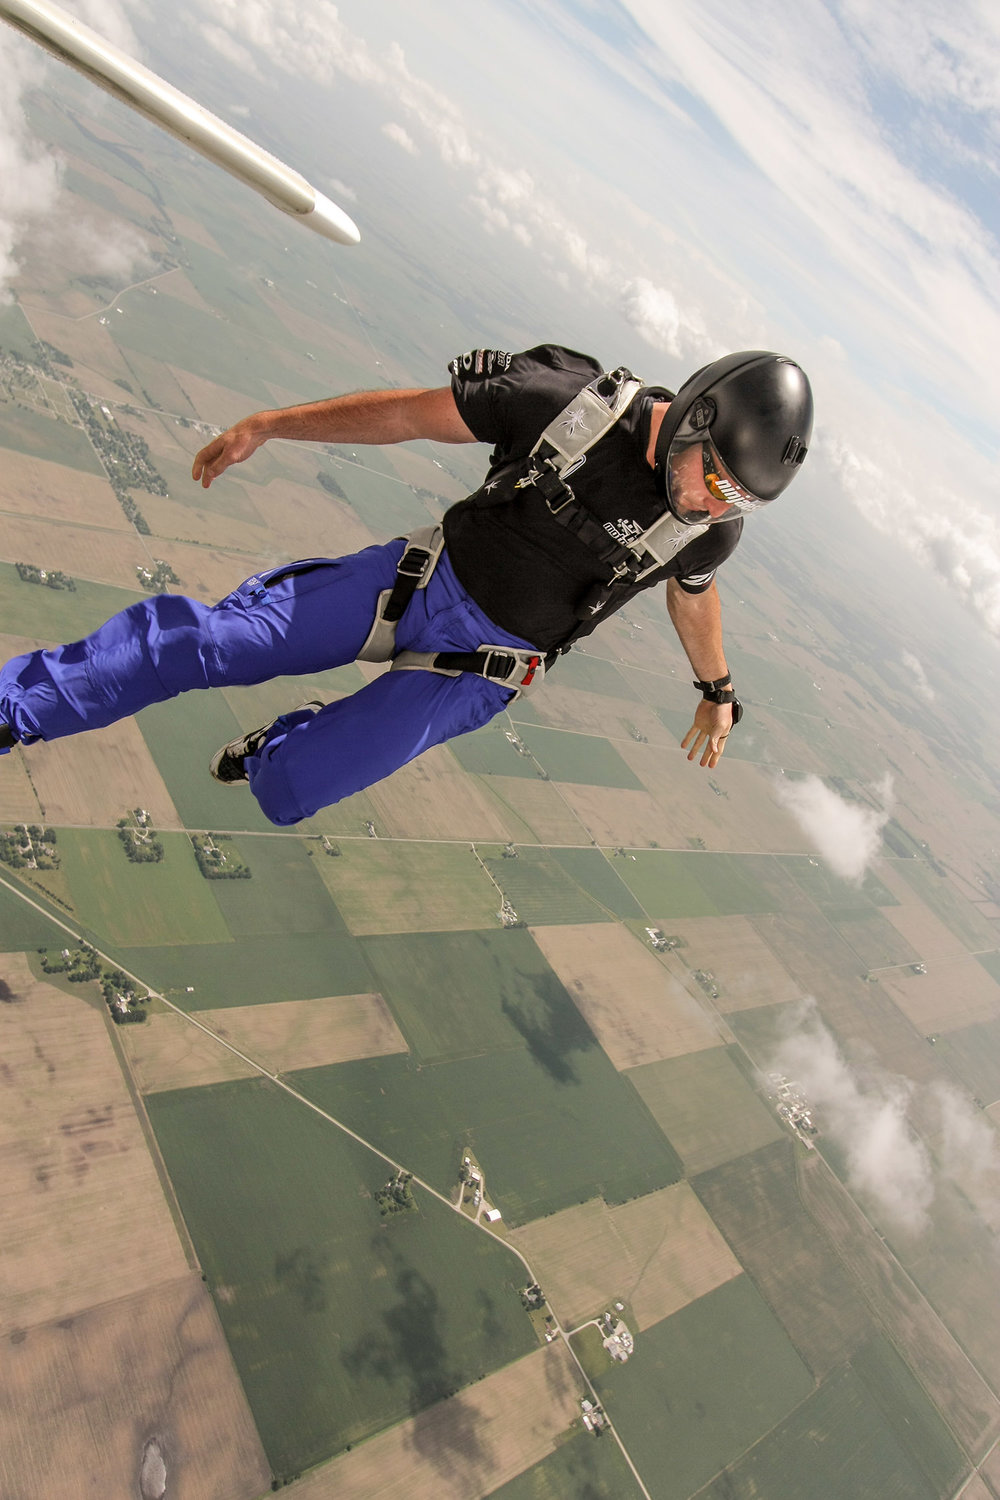 Skydiver steps out into the skies